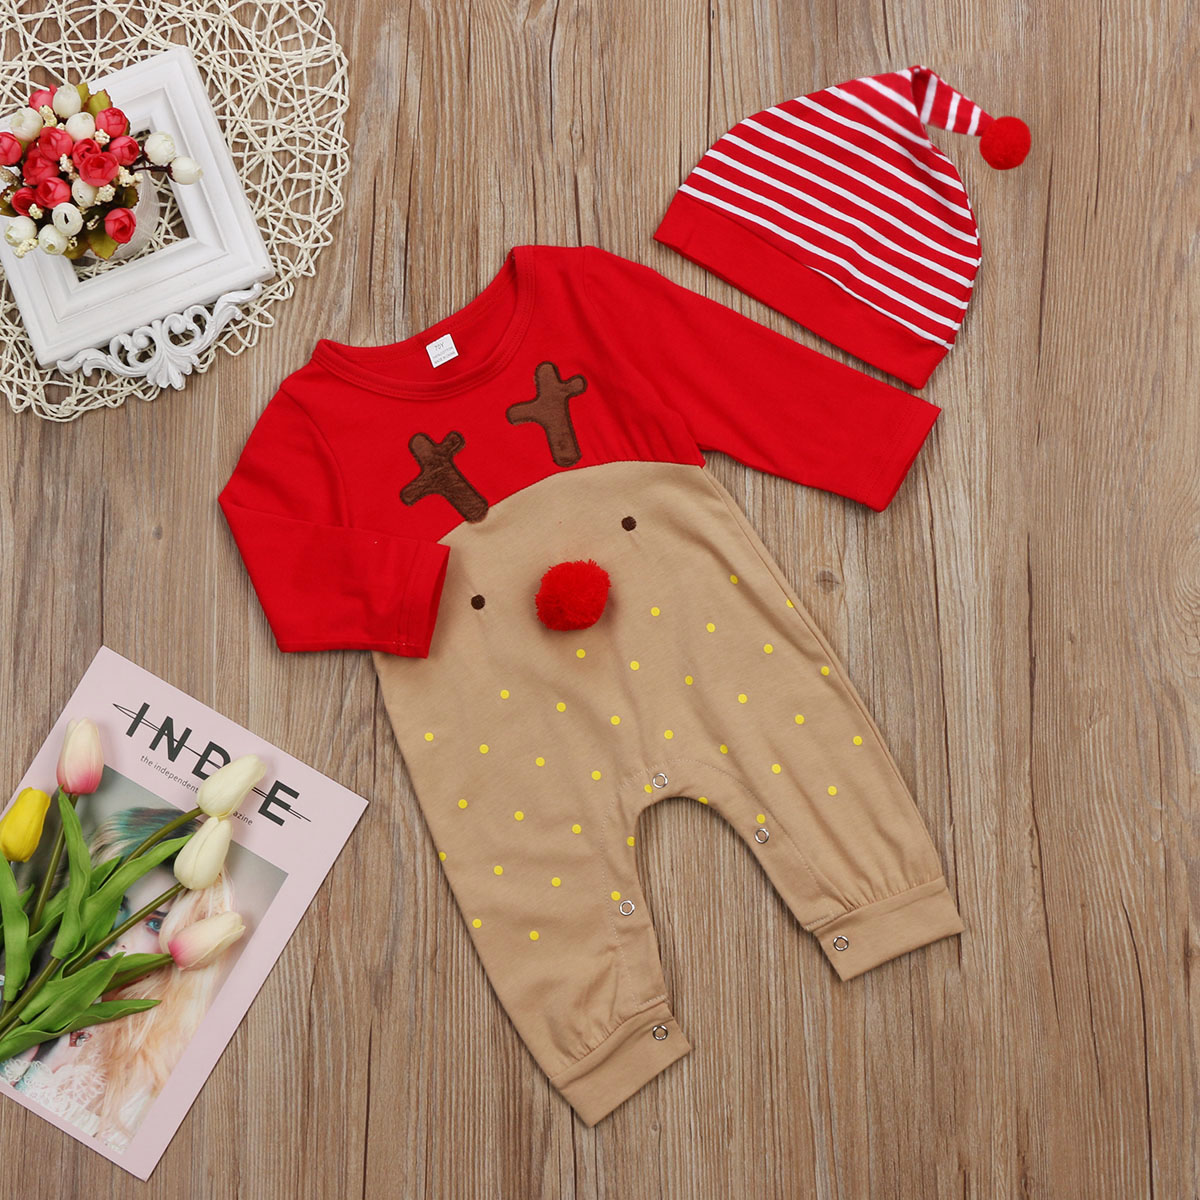 HTB1JNS4aoz1gK0jSZLeq6z9kVXaB Emmababy 2Pcs Newborn Baby Boys Girl Christmas Rompers Long Sleeve Deer Romper Jumpsuit Hat Sleepwear Party Costume Baby Clothes